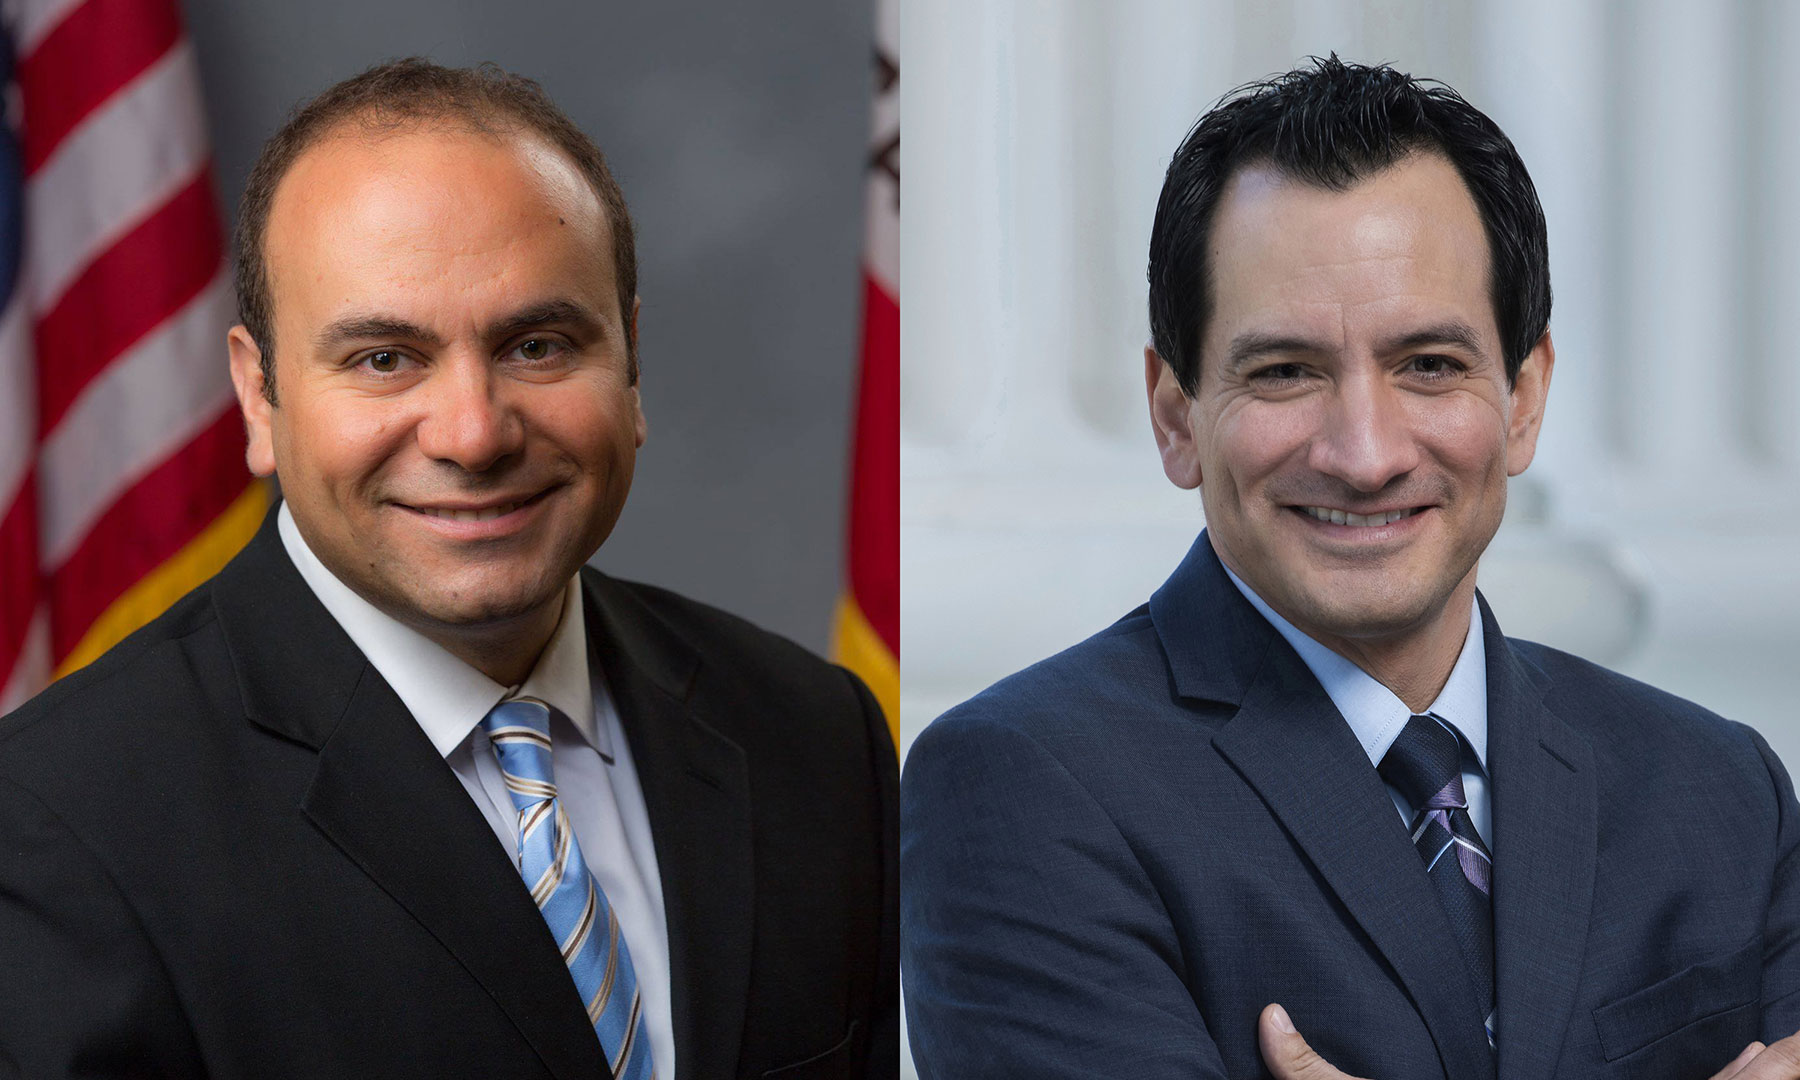 Armenian American Museum to Honor State Assemblymembers at Inaugural Gala